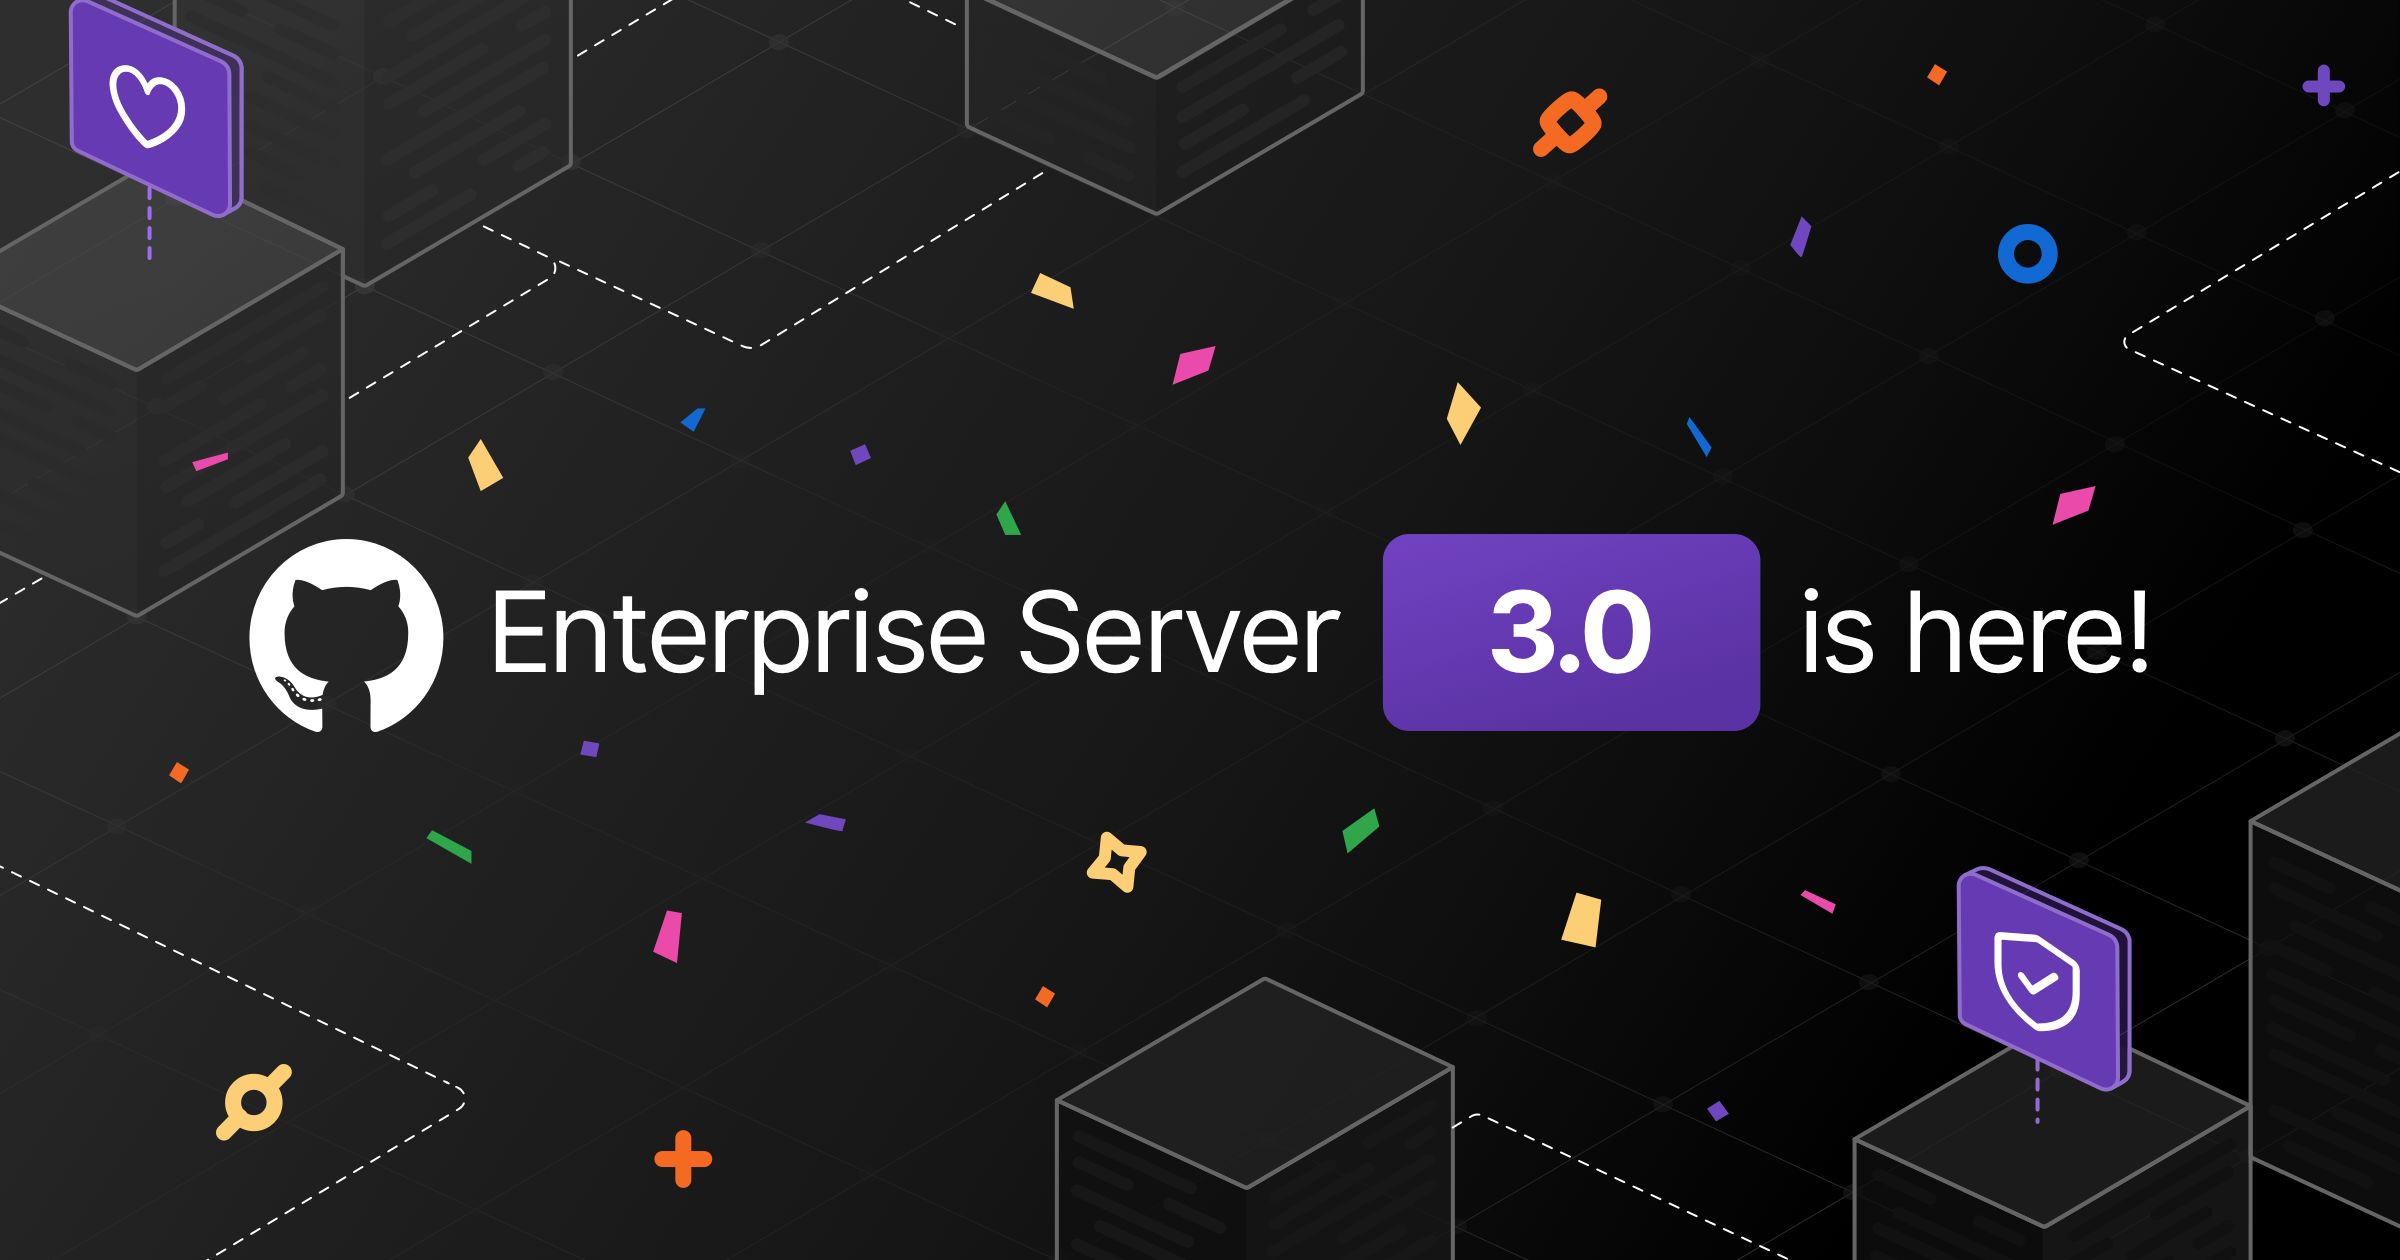 GitHub Enterprise Server 3.0 is now generally available - The GitHub Blog